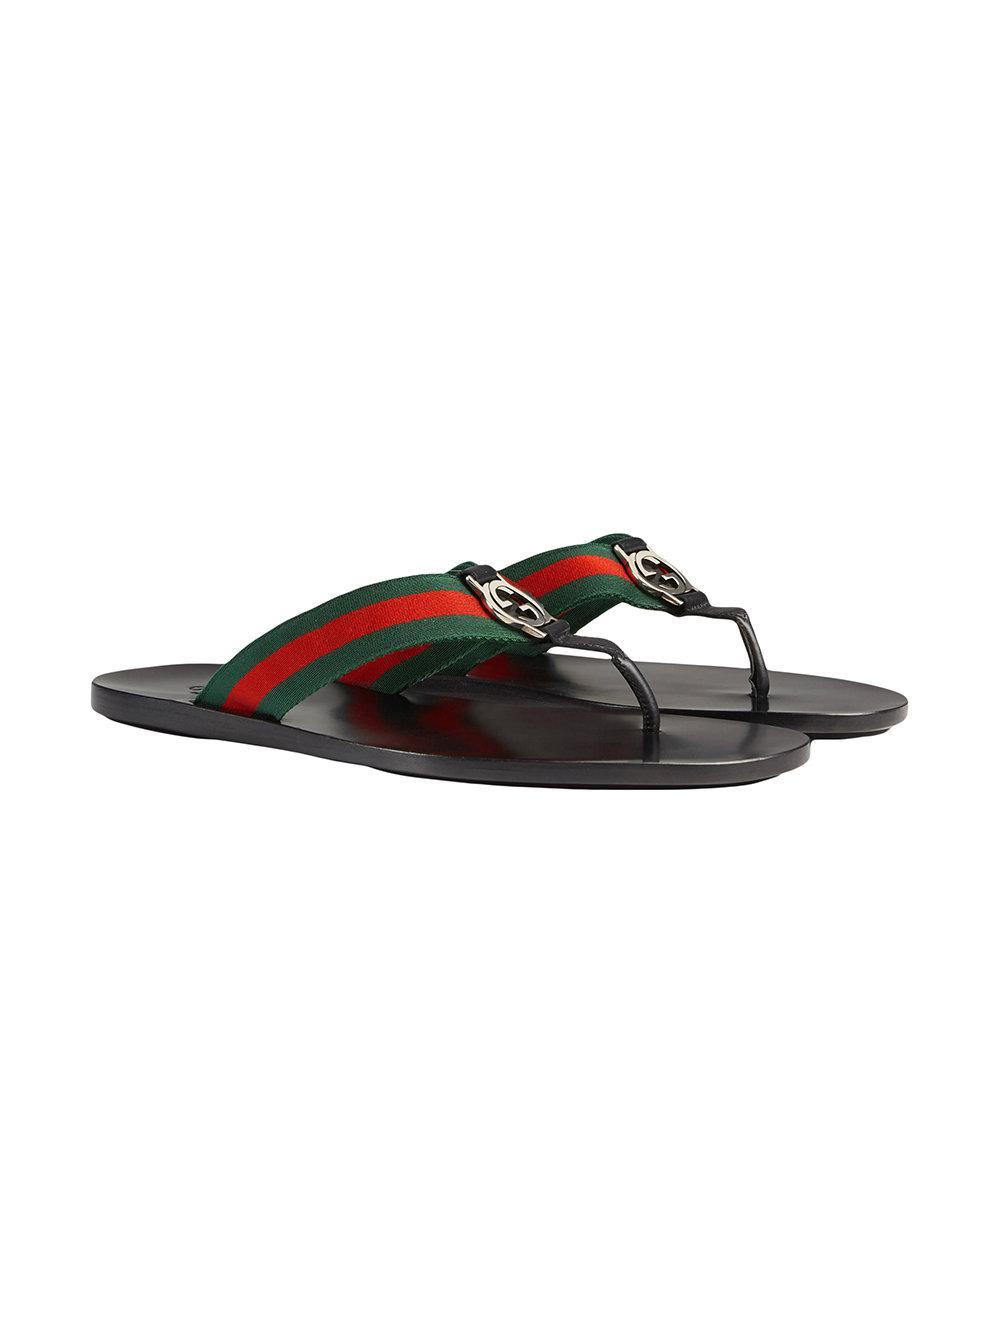 309373a3eb15f Lyst - Gucci Web Strap Thong Sandal in Black for Men - Save  1.4084507042253591%